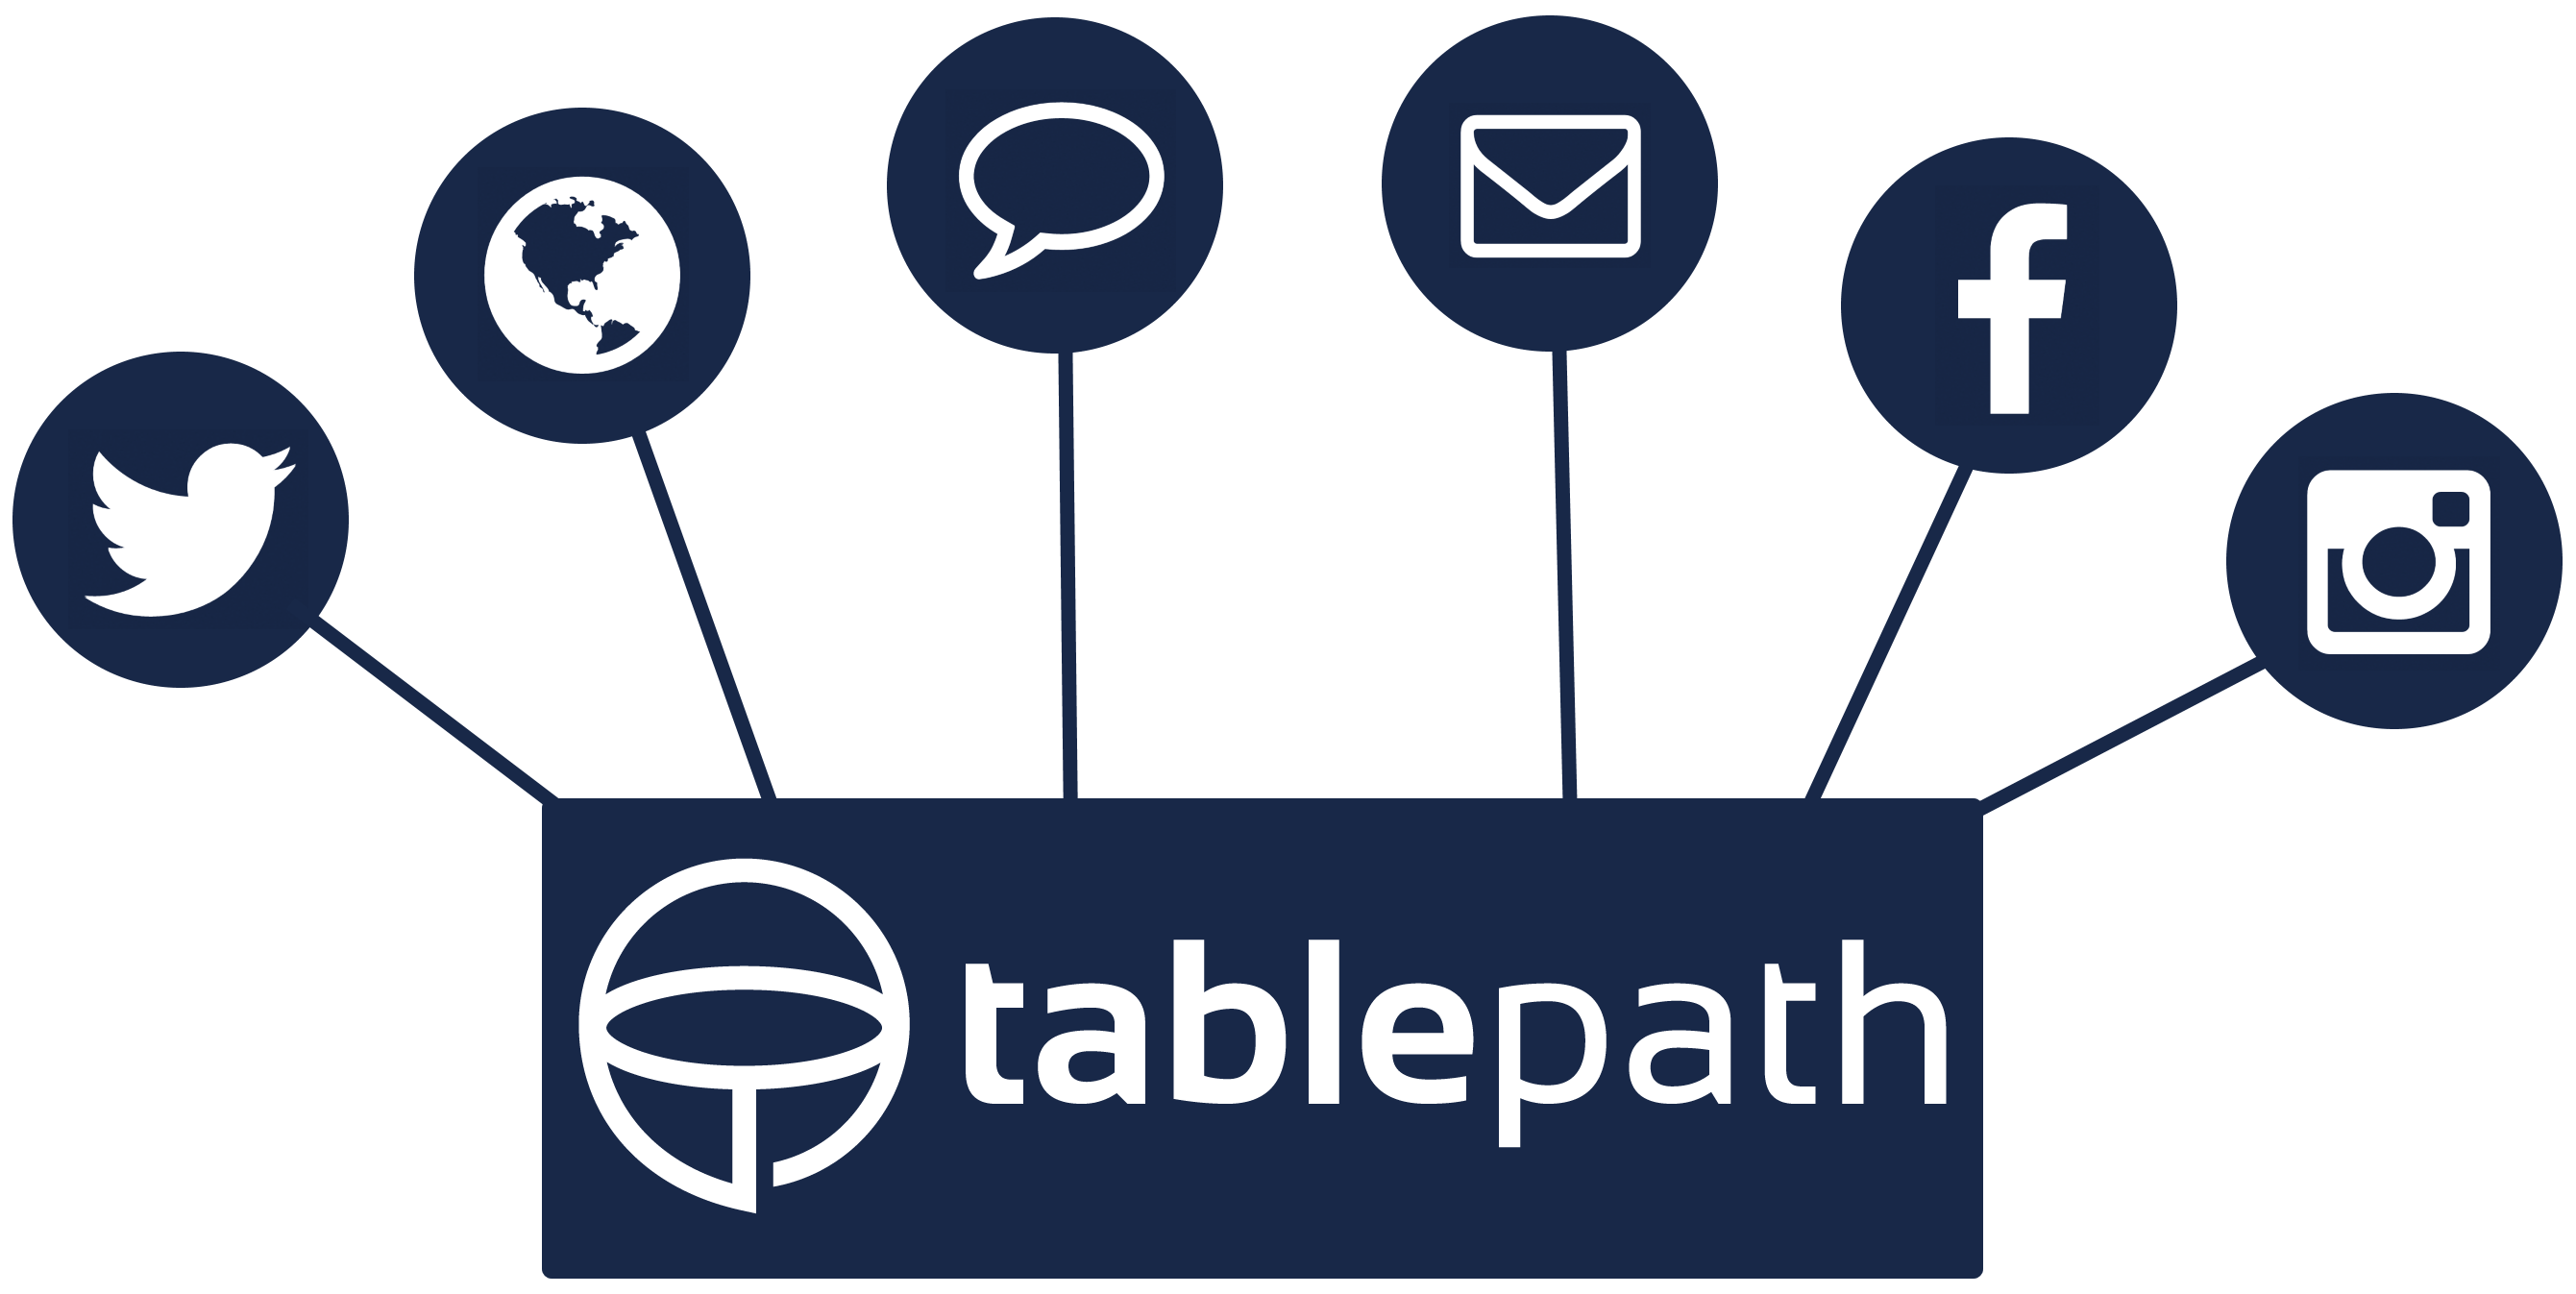 TablePath Marketing